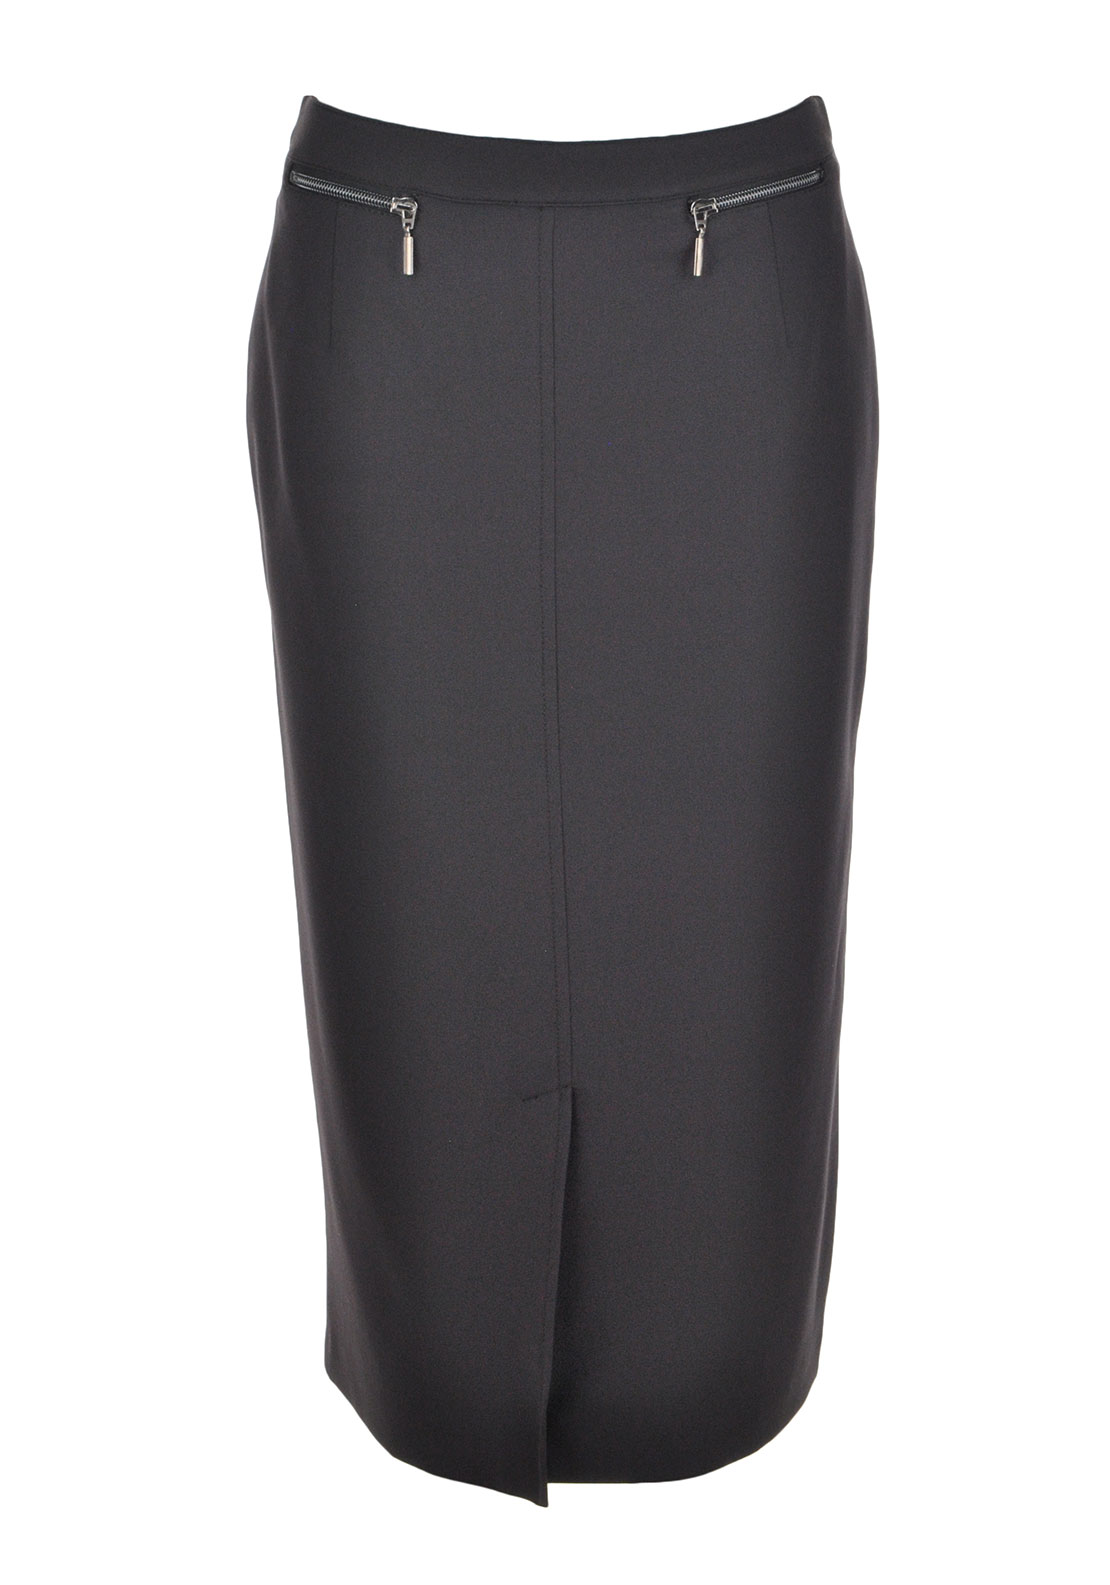 Eugen Klein Straight Midi Length Skirt, Charcoal Grey